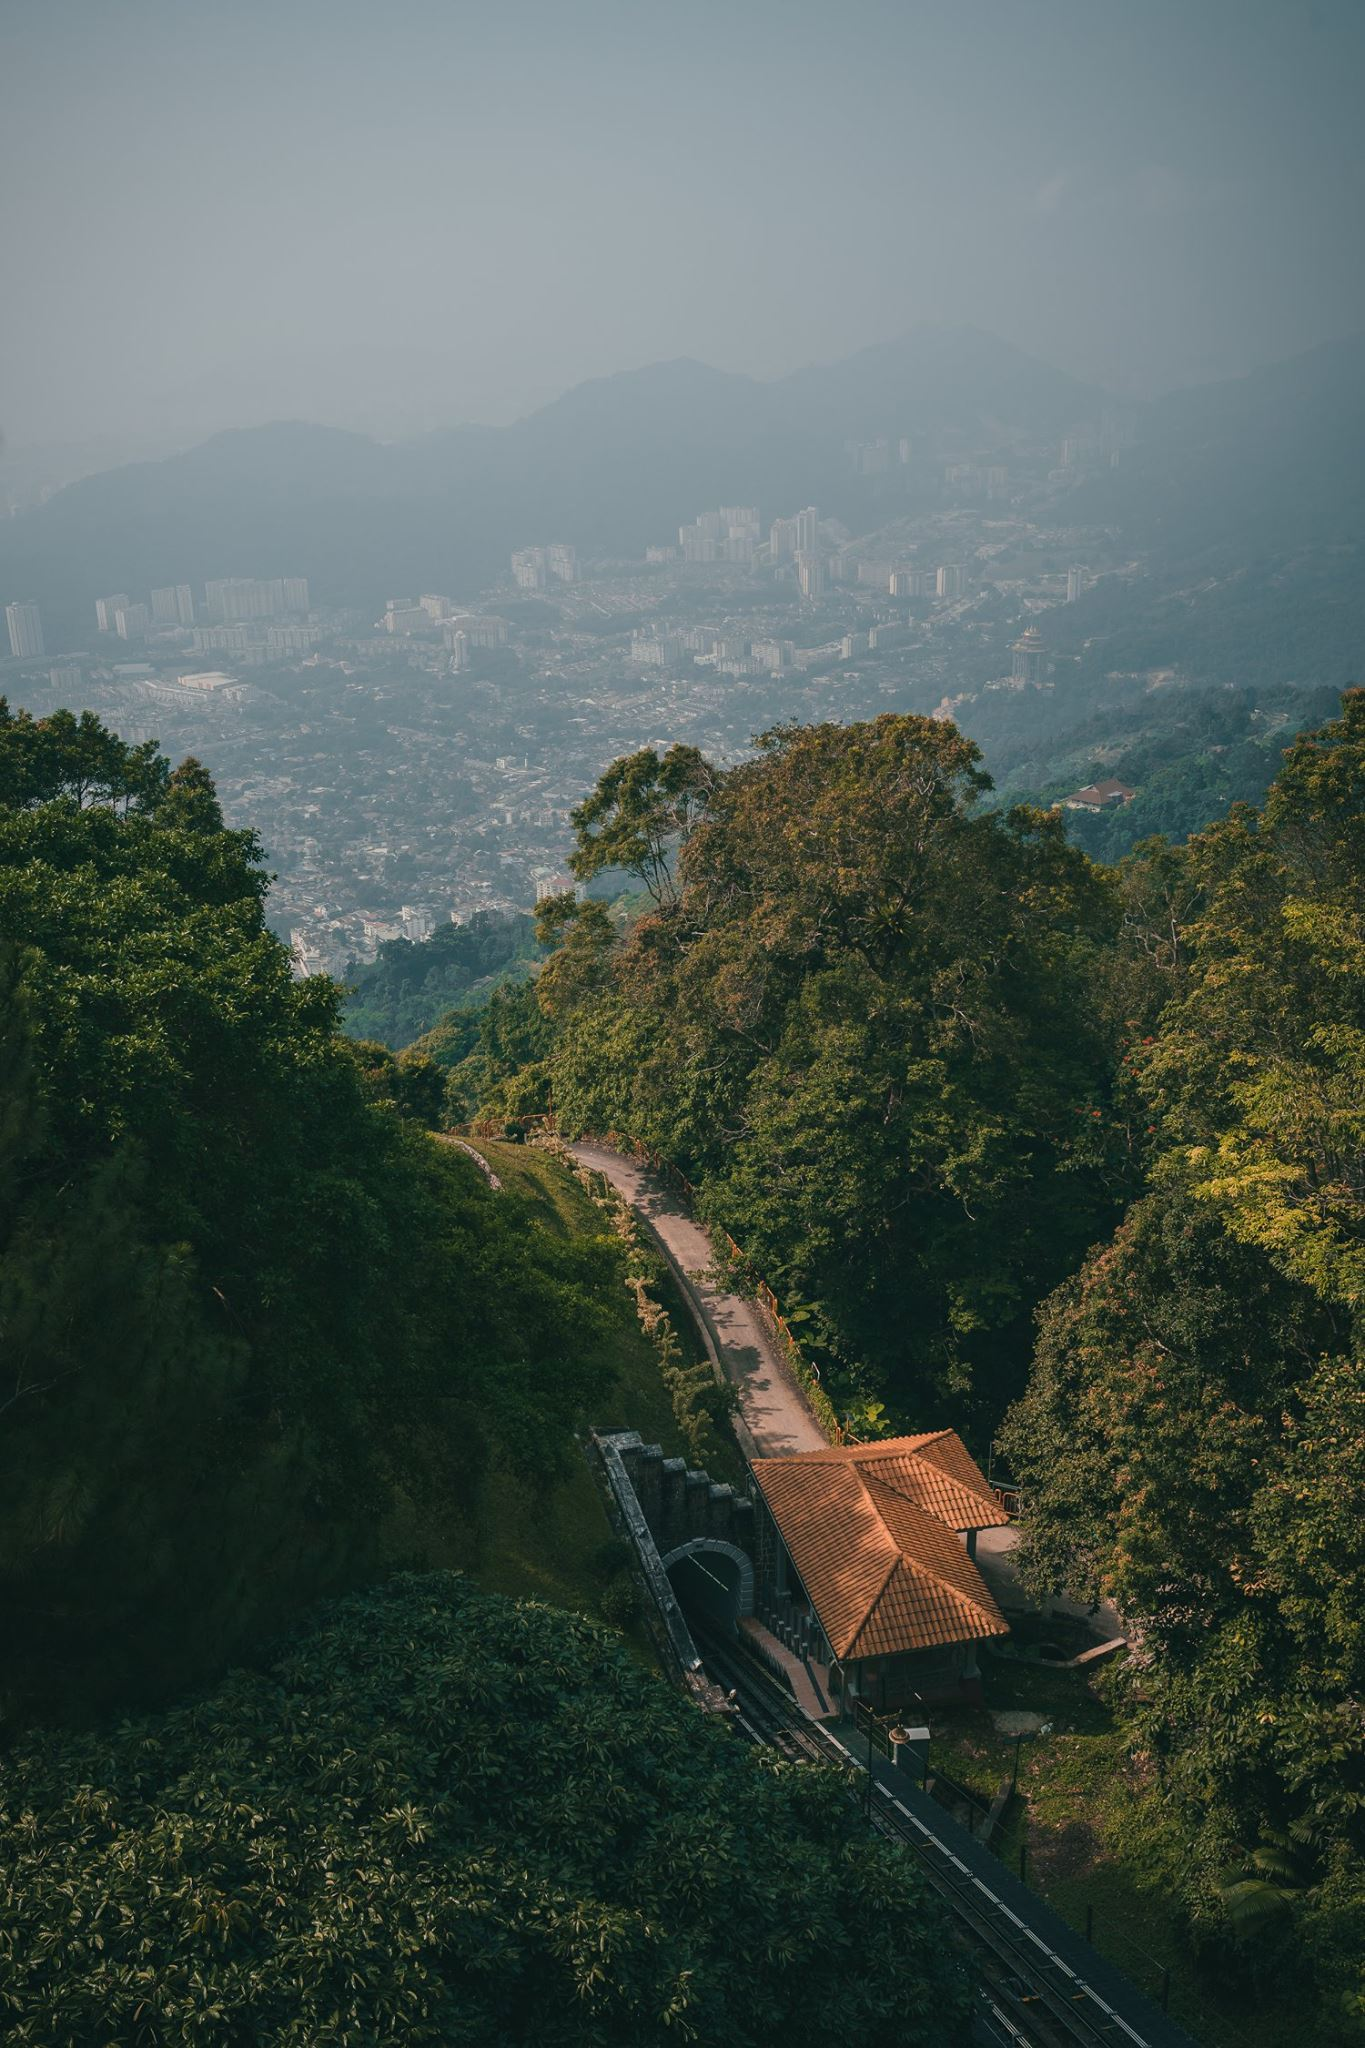 Penang Hill - An overview of Penang